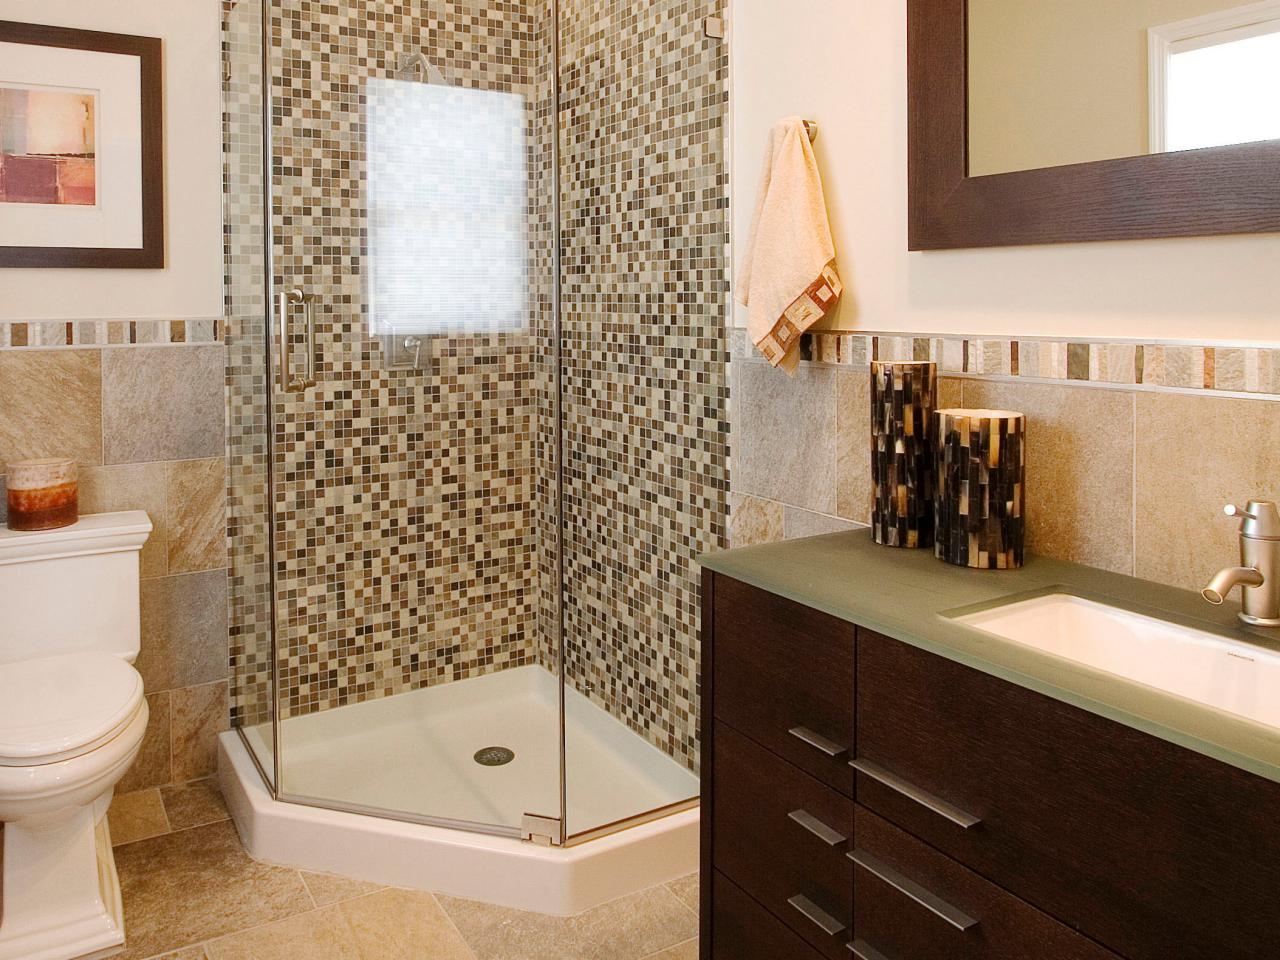 Walk In Tub Designs Pictures Ideas Tips From Hgtv: Tips For Remodeling A Bath For Resale